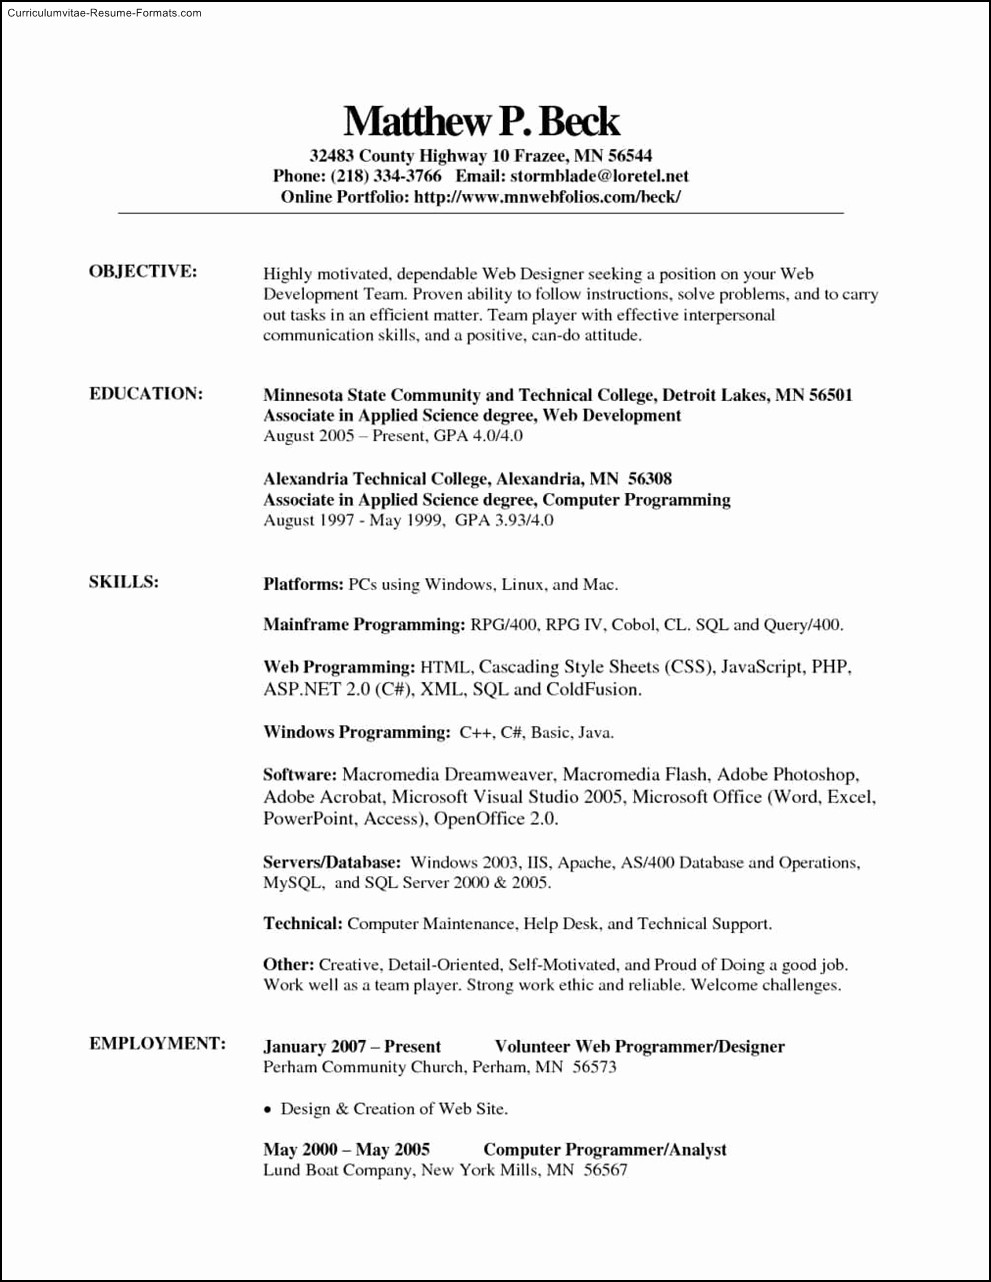 Ms Office Word Resume Templates Luxury Job and Resume Template Sample Resume Templates In